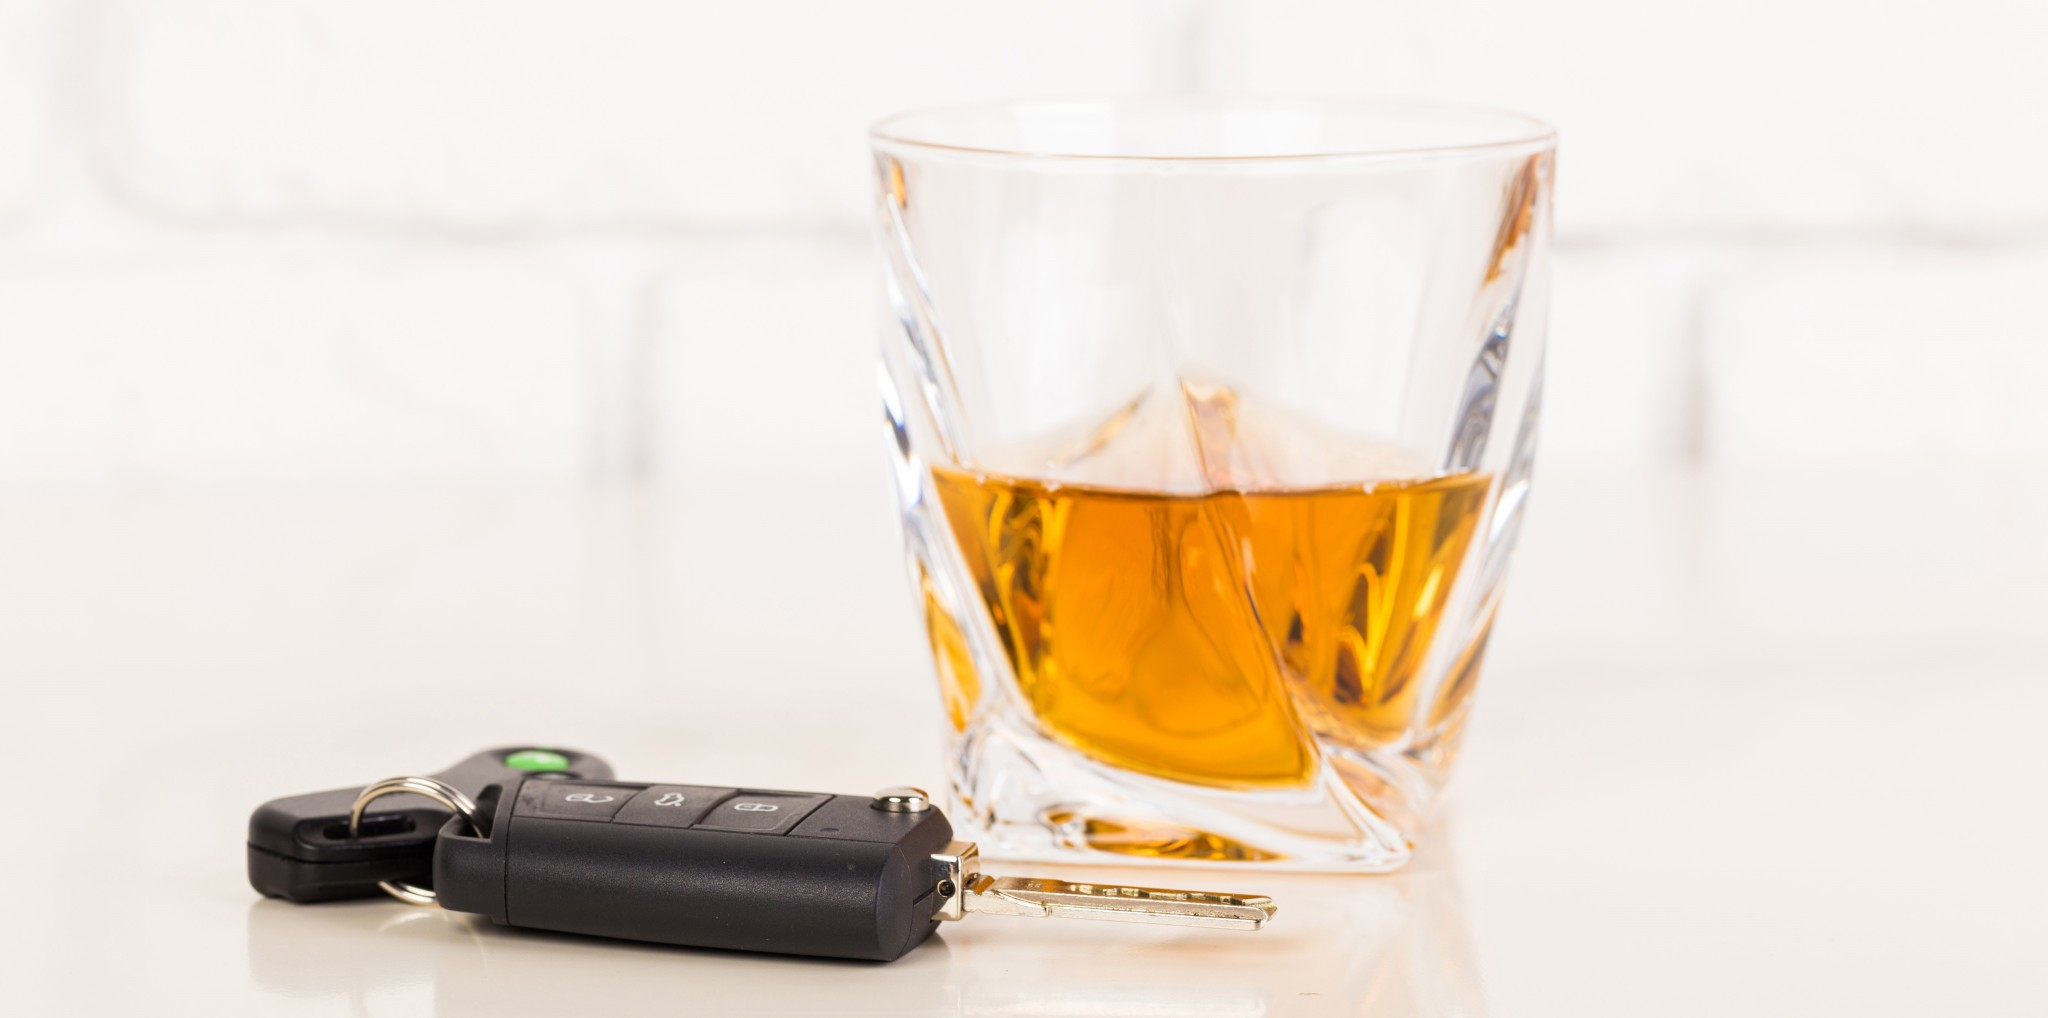 PREVENTING PEOPLE FROM DRIVING DRUNK